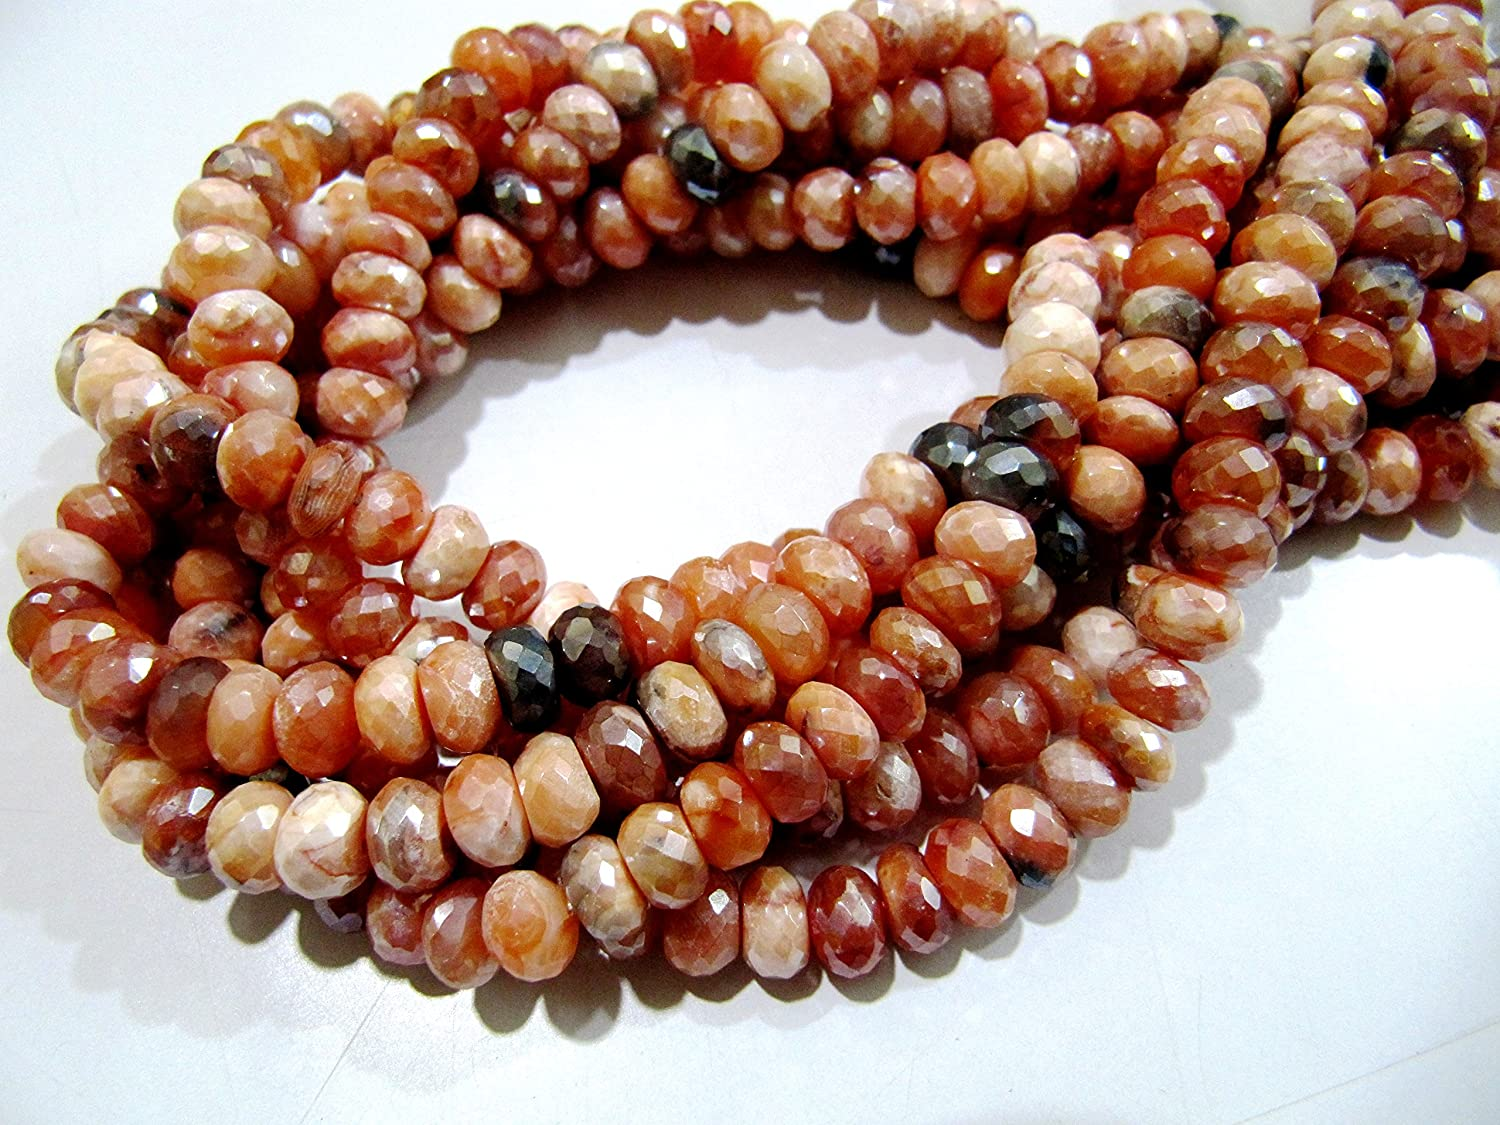 Fire Opal Faceted Rondelle Shape Beads Natural Fire Opal Gemstone Beads SKU#154801 Total 10 Strands of 13 Inches In The Lot 3.5-4mm